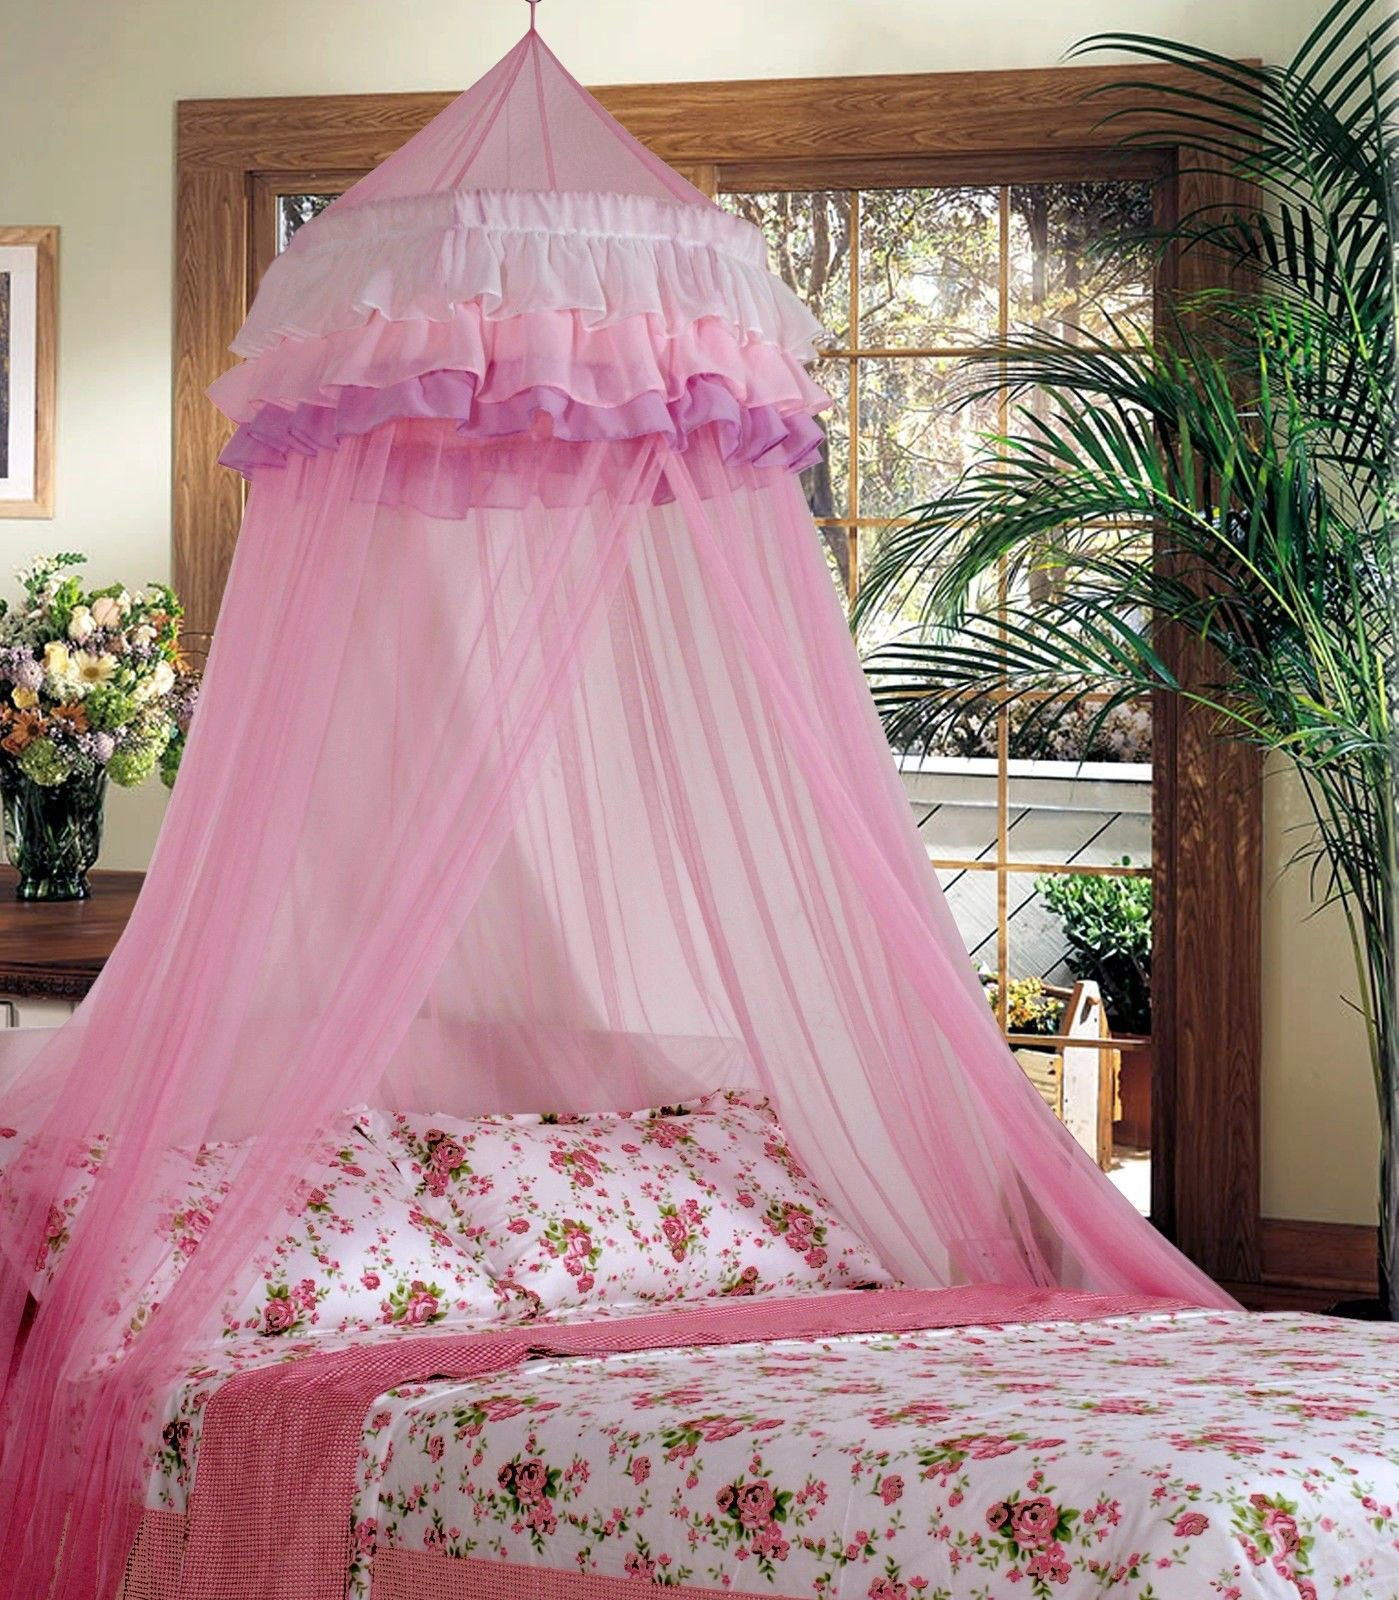 Goplus Princess Bed Canopy Mosquito Netting Dome with Elegant Ruffle Lace for Girls and Baby & Amazon.com : Sinotop Baby Crib Canopy Netting Luxury Princess Bed ...